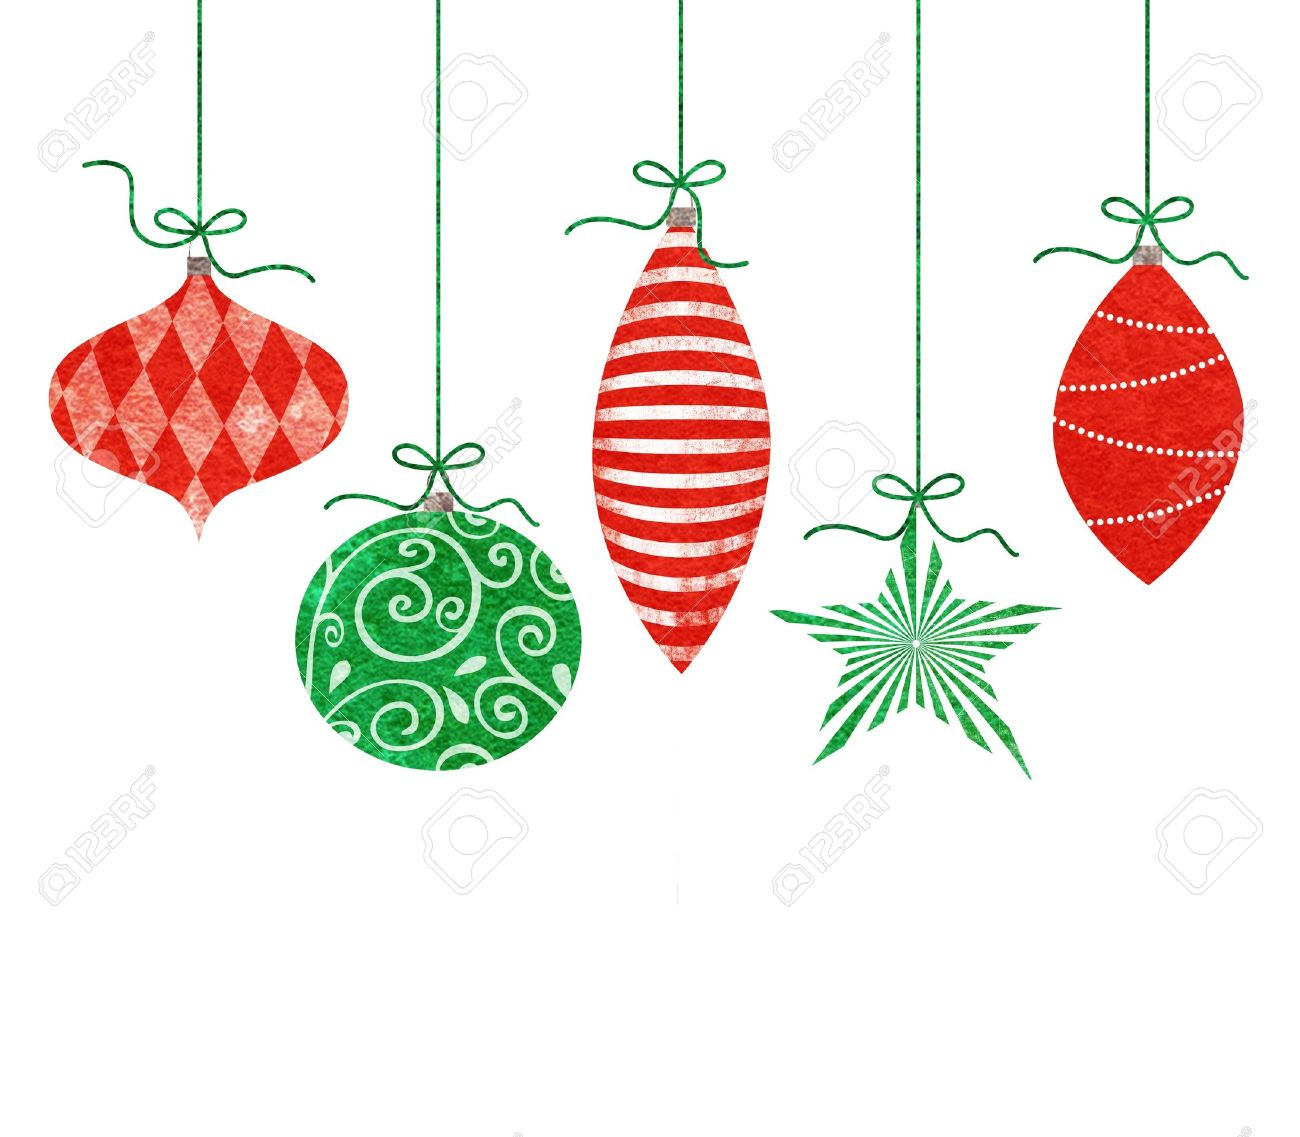 Christmas Ornament: Five Cute Retro Christmas Ornaments Hanging By Green  String